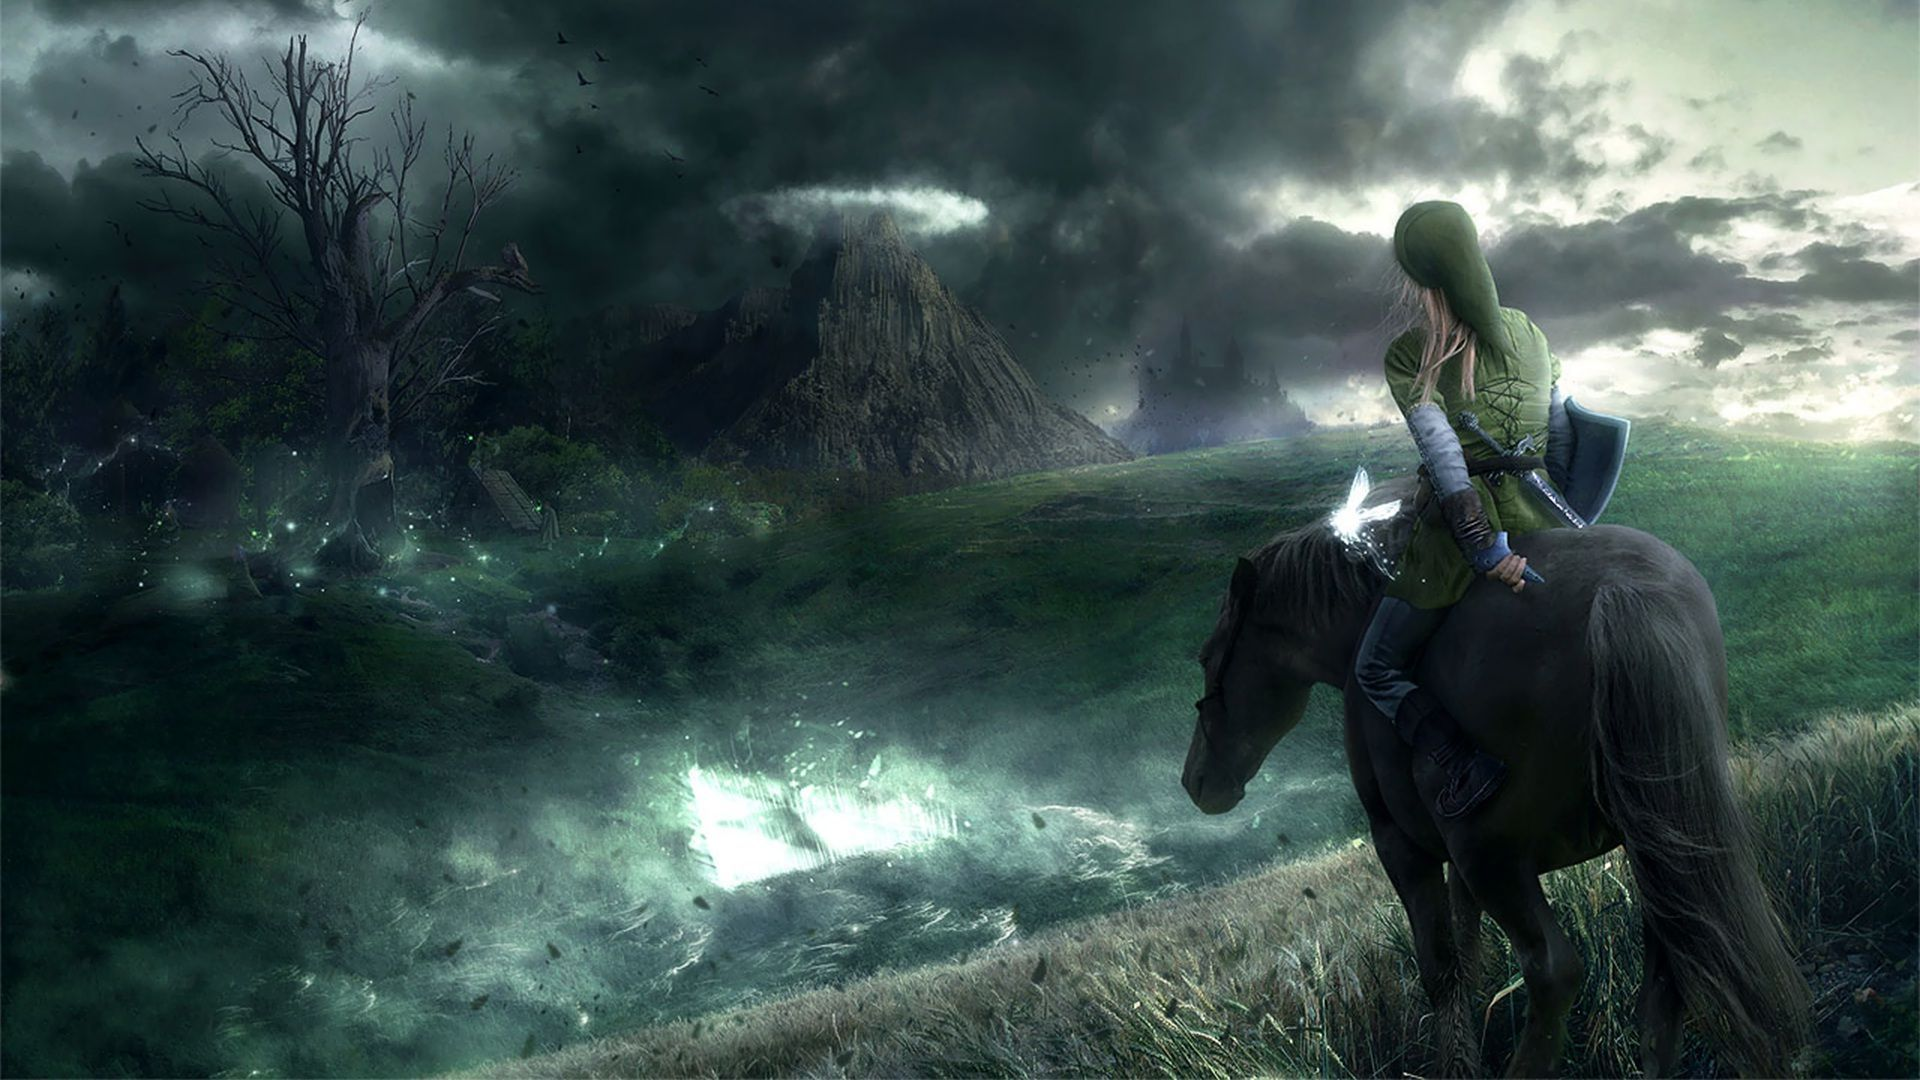 the-legend-of-zelda-game-hd-wallpaper-1920x1080 | wallpaper.wiki